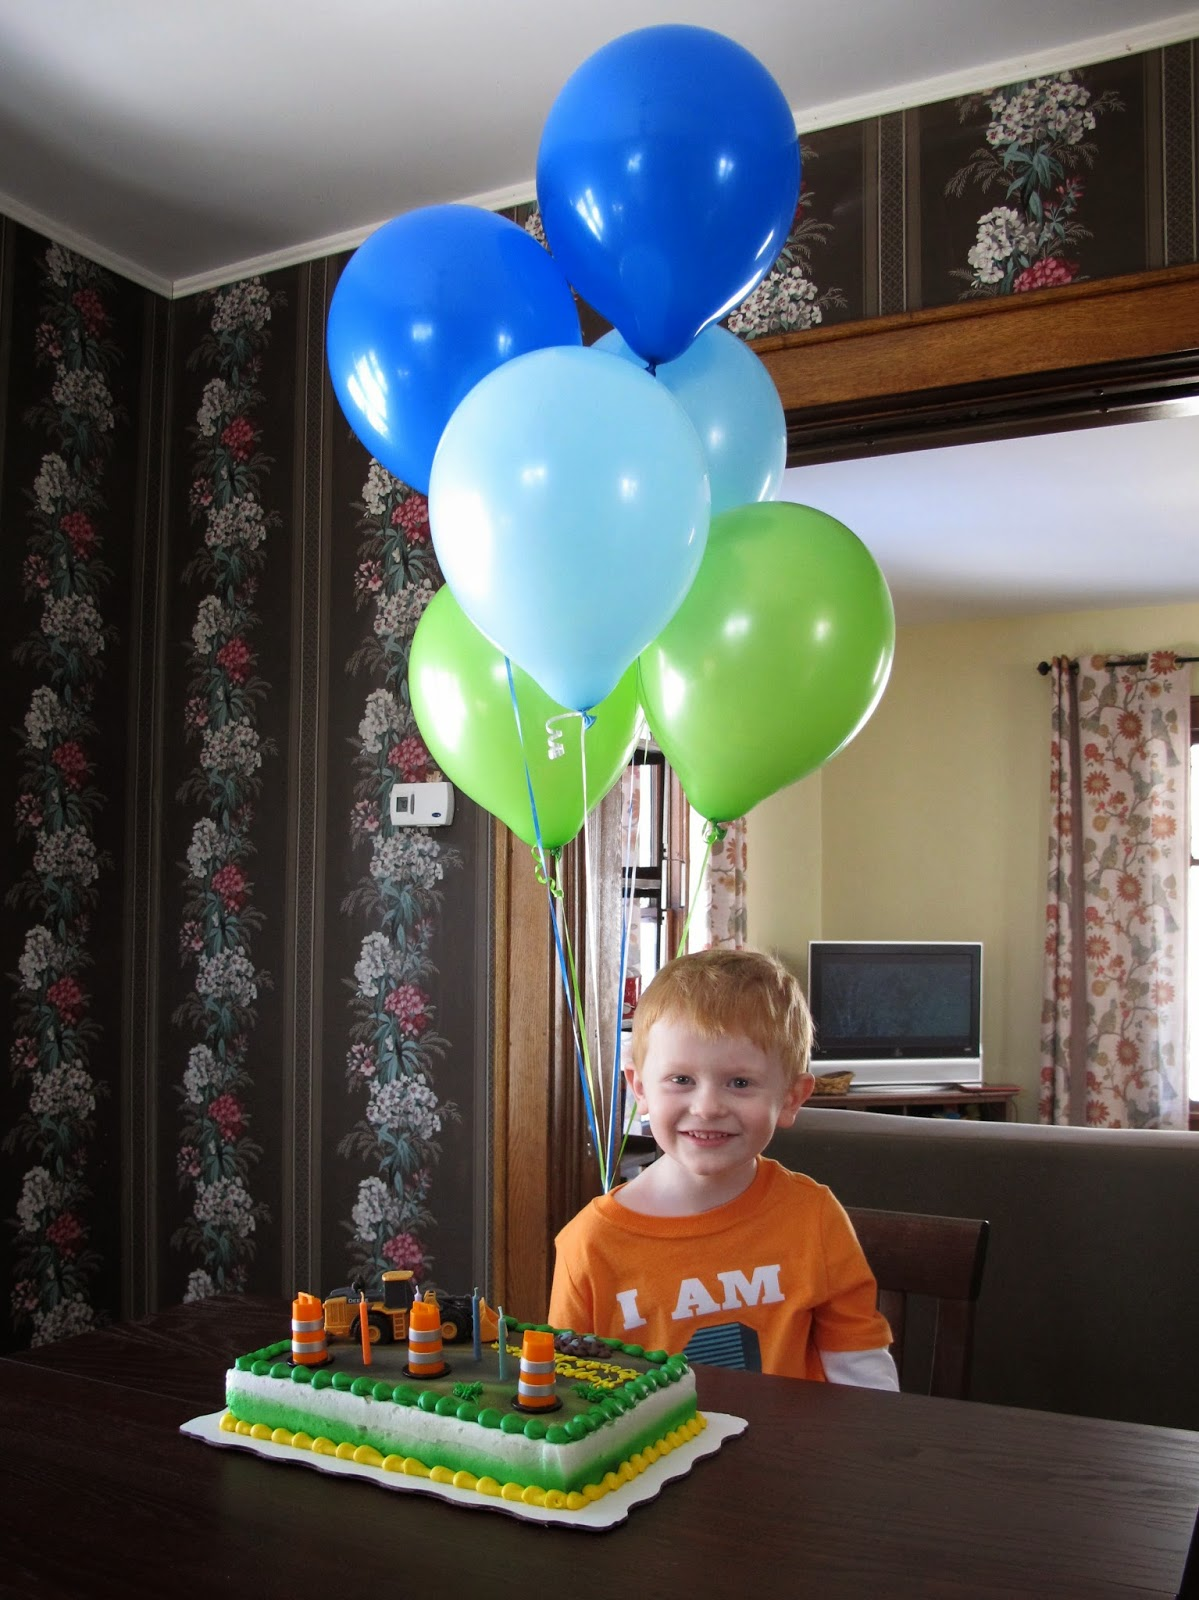 Porter with Balloons & Cake